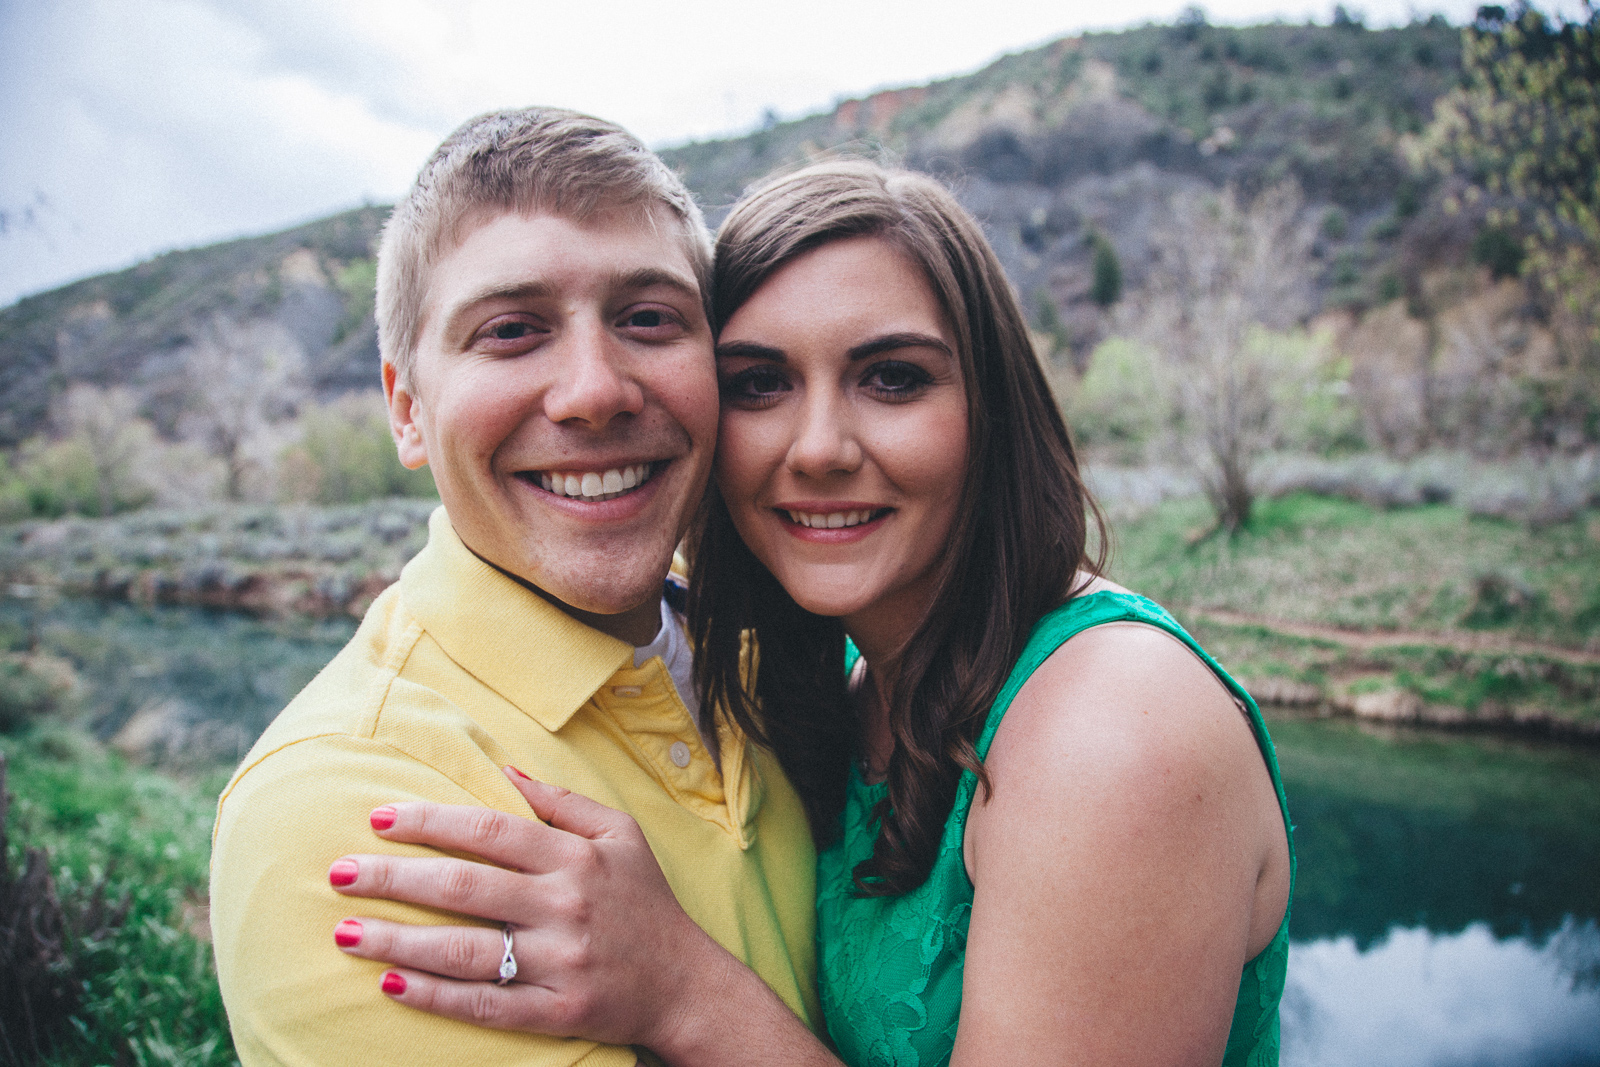 033-engagement-trees-fun-wedding-train-laughing-durango-colorado-farmington-candid